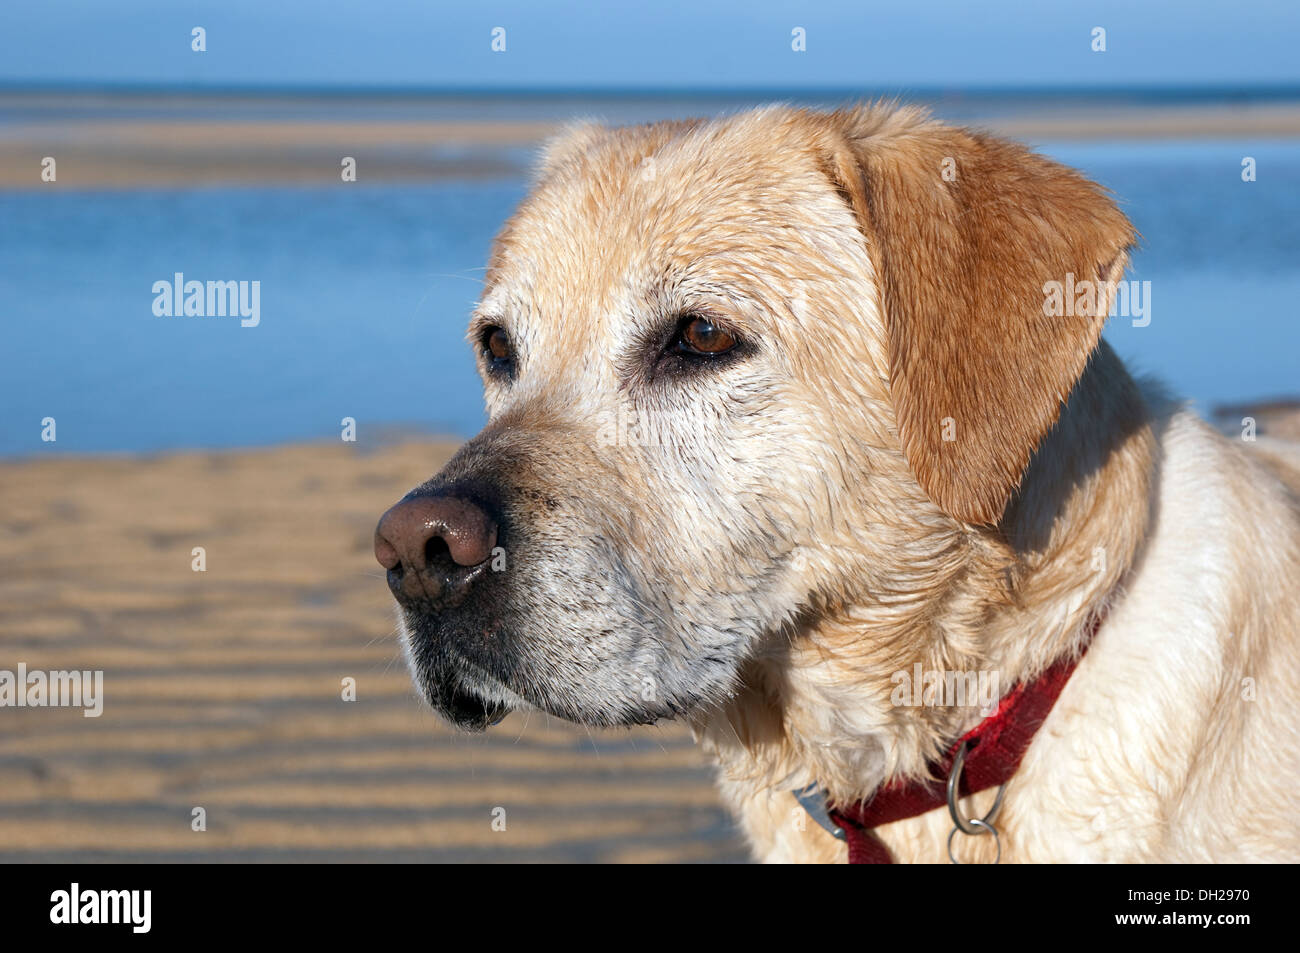 A male golden labrador dog - Stock Image